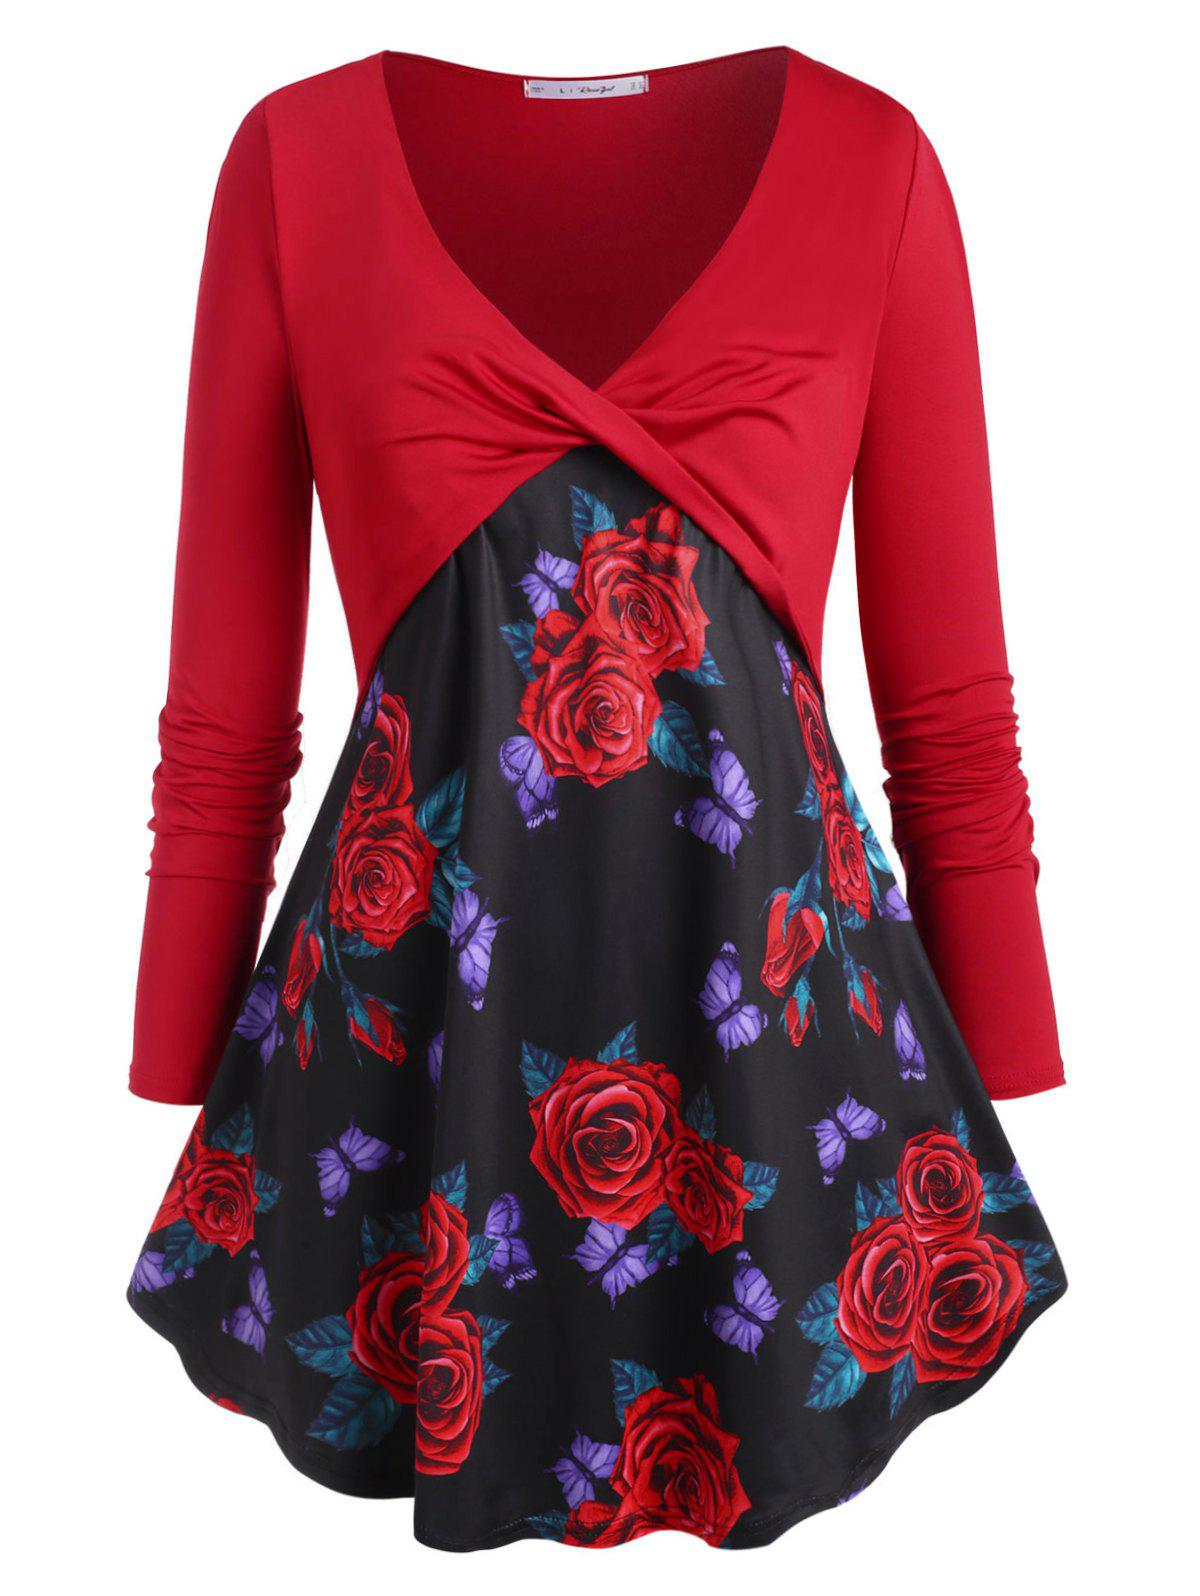 Rose Butterfly Twisted Front Plus Size Top - RED 5X